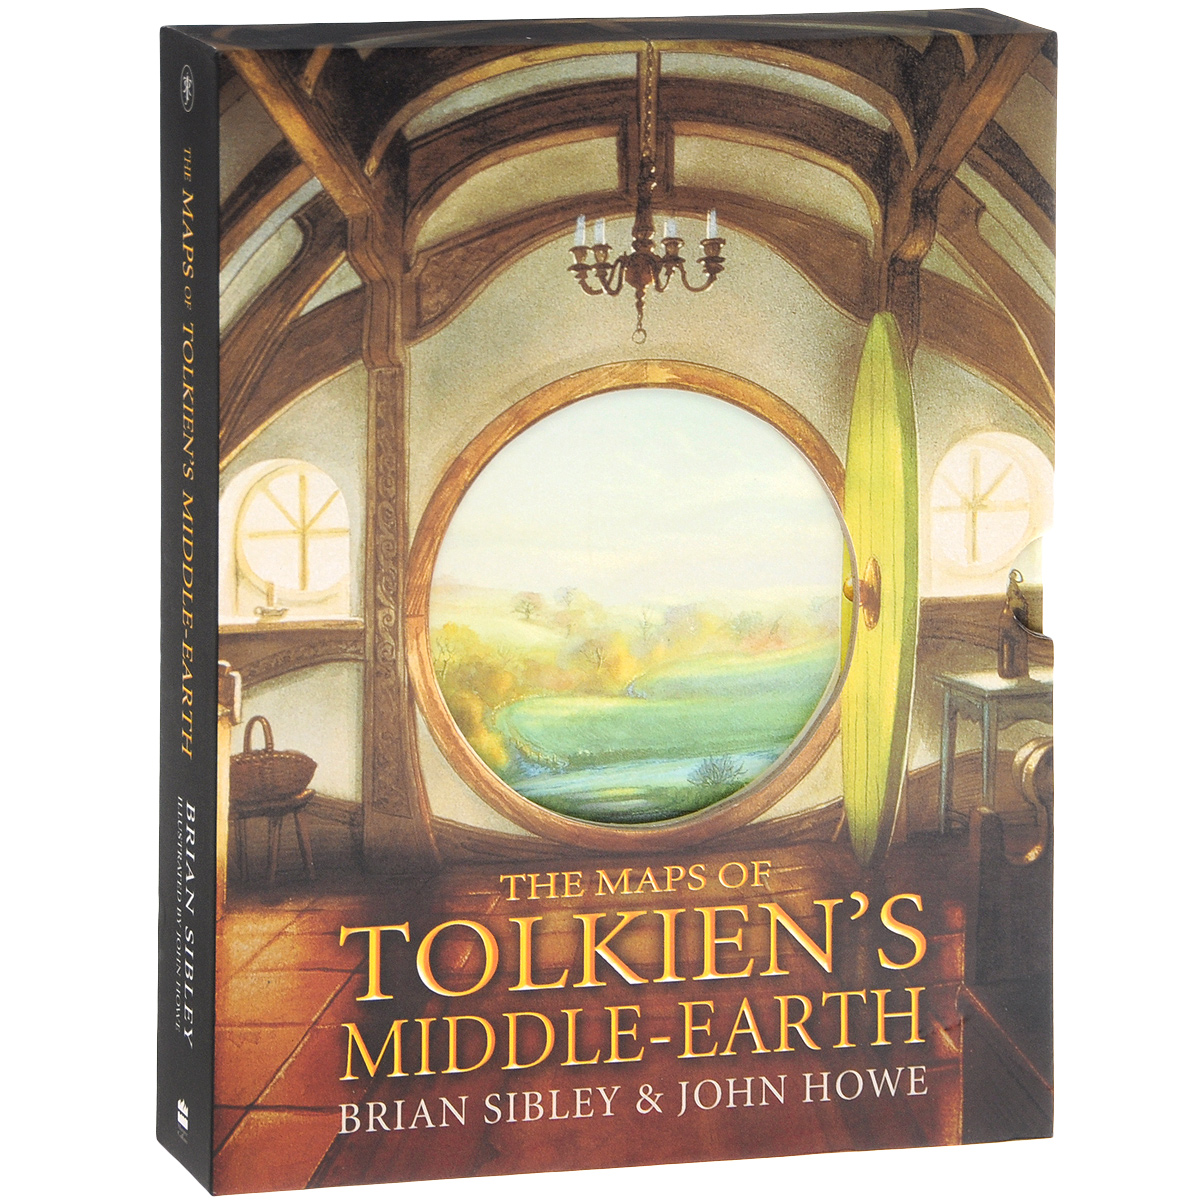 The Maps of Tolkien's Middle-Earth (комплект из 2 книг)